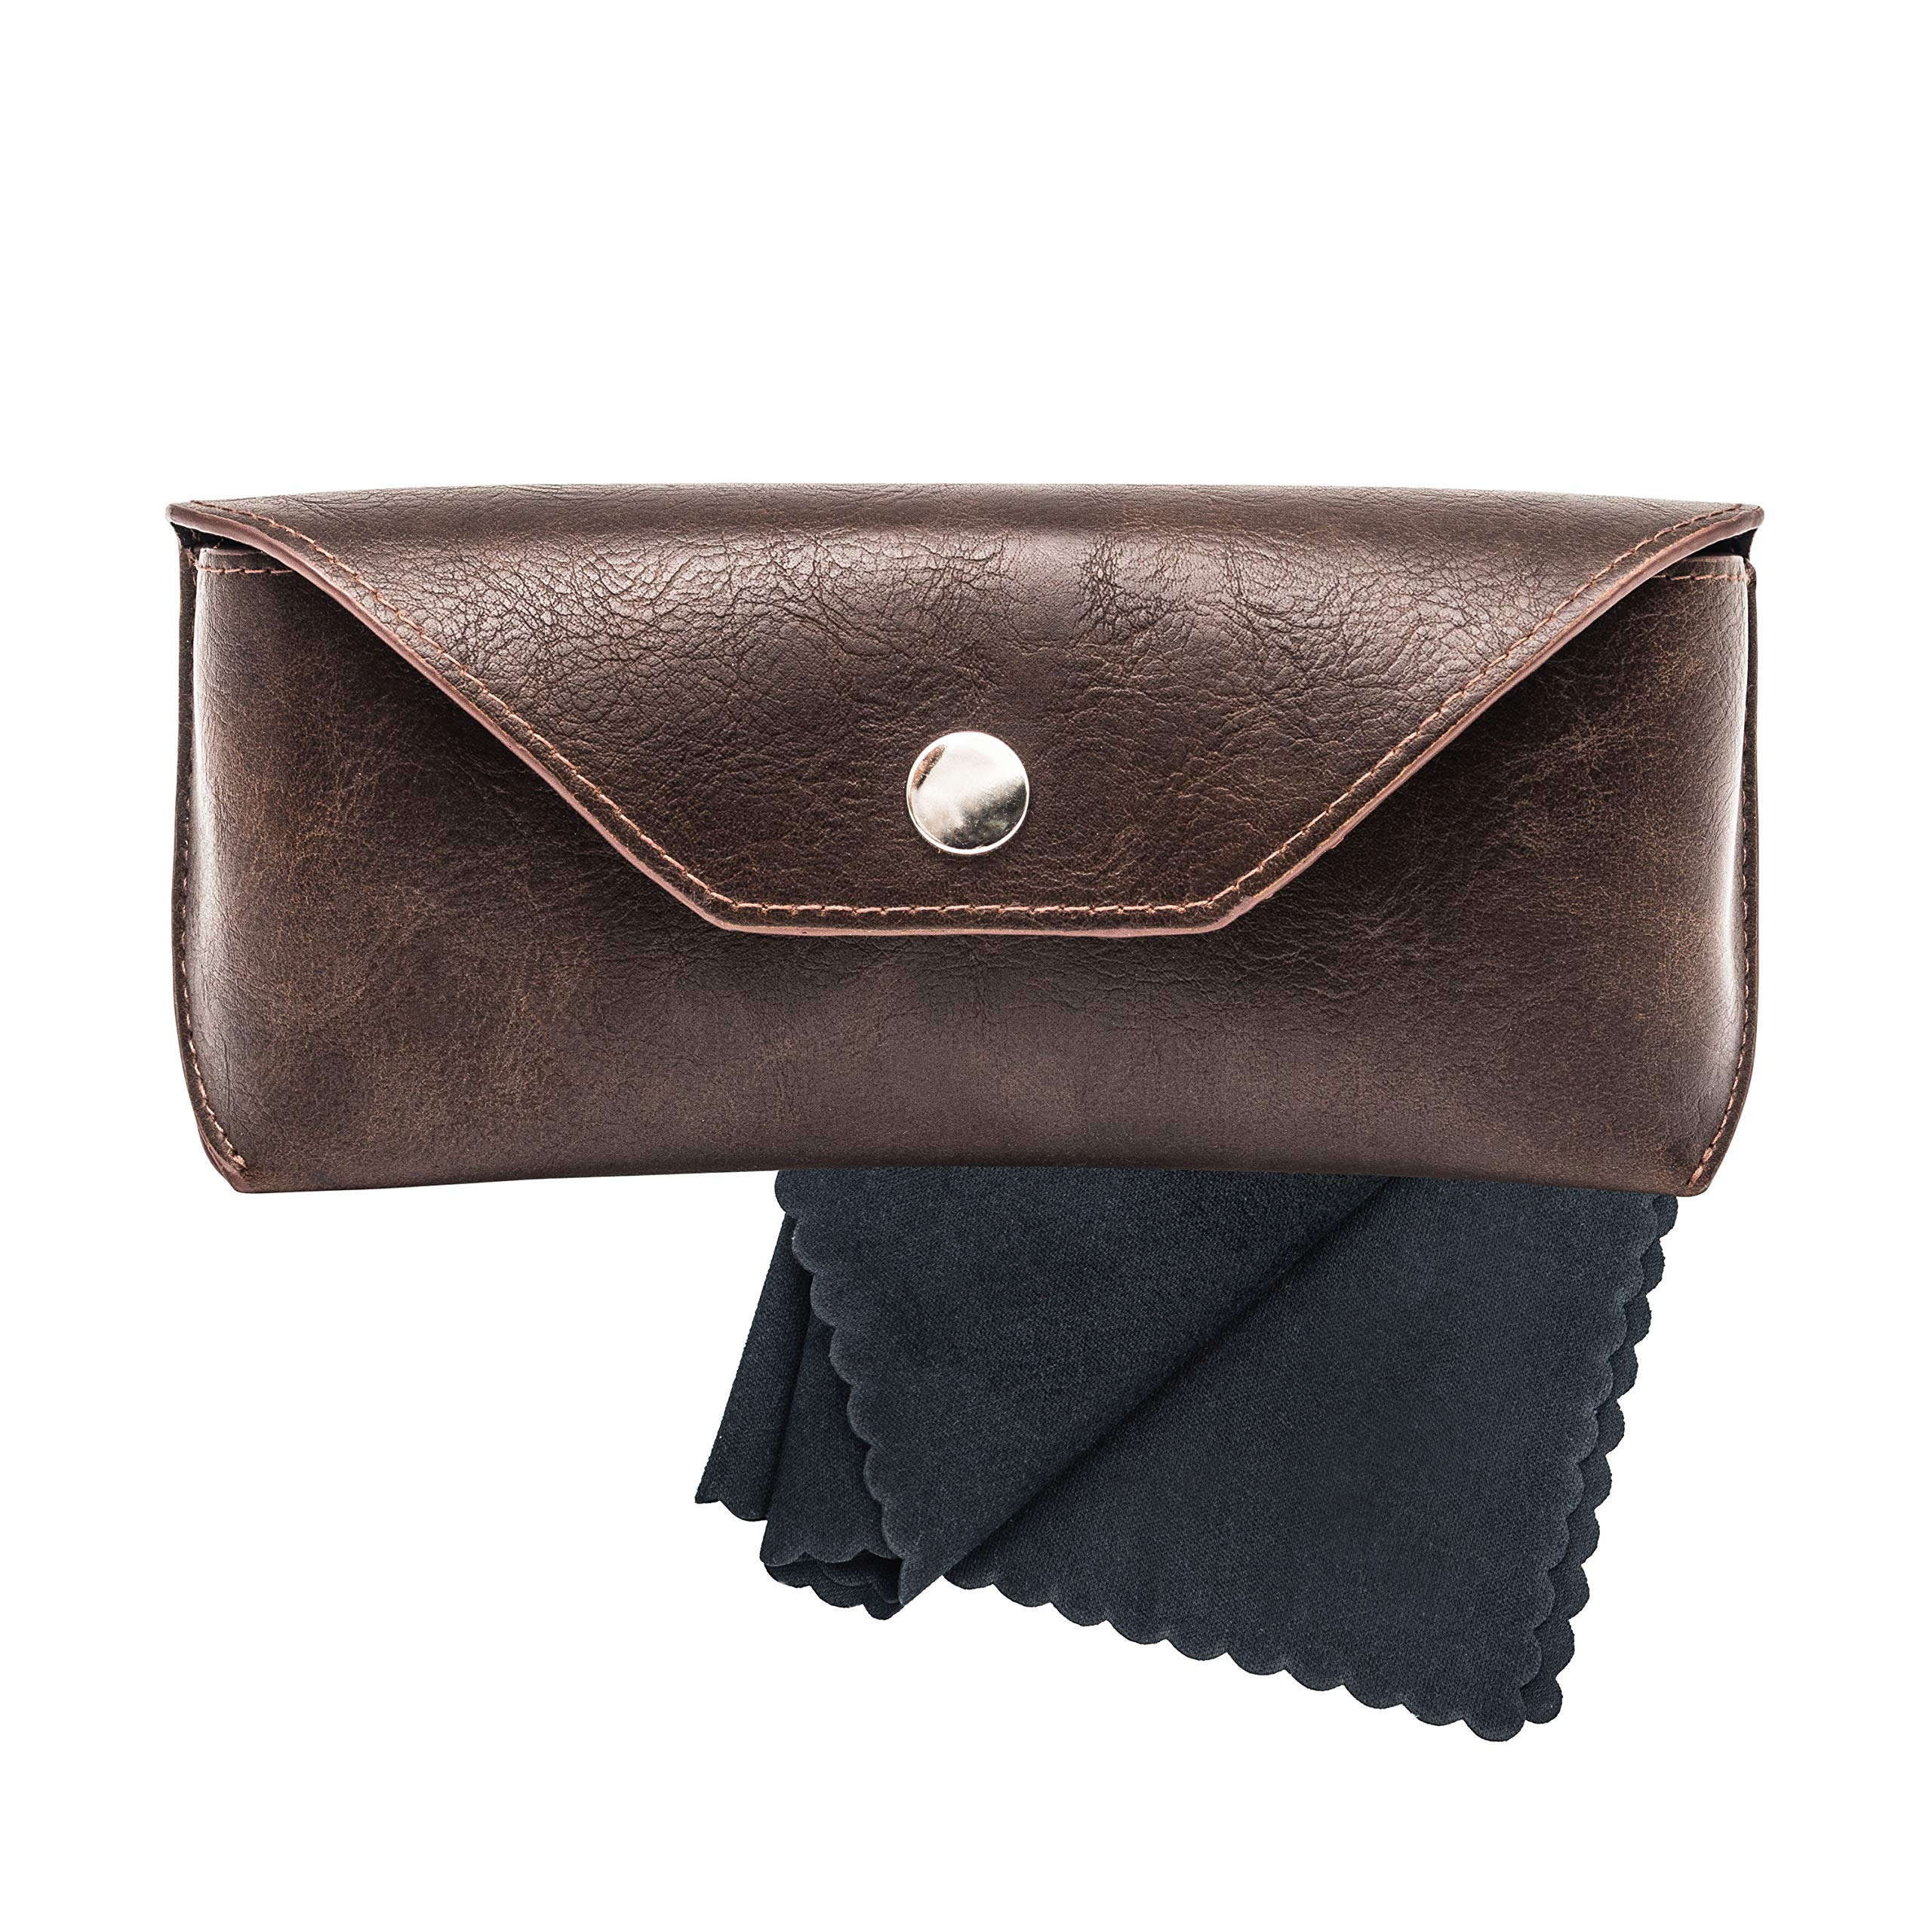 X Large Eyeglass Protection Leatherette Case Holder for Glasses And Sunglasses with Microfiber Cleaning Cloth - Men and Women